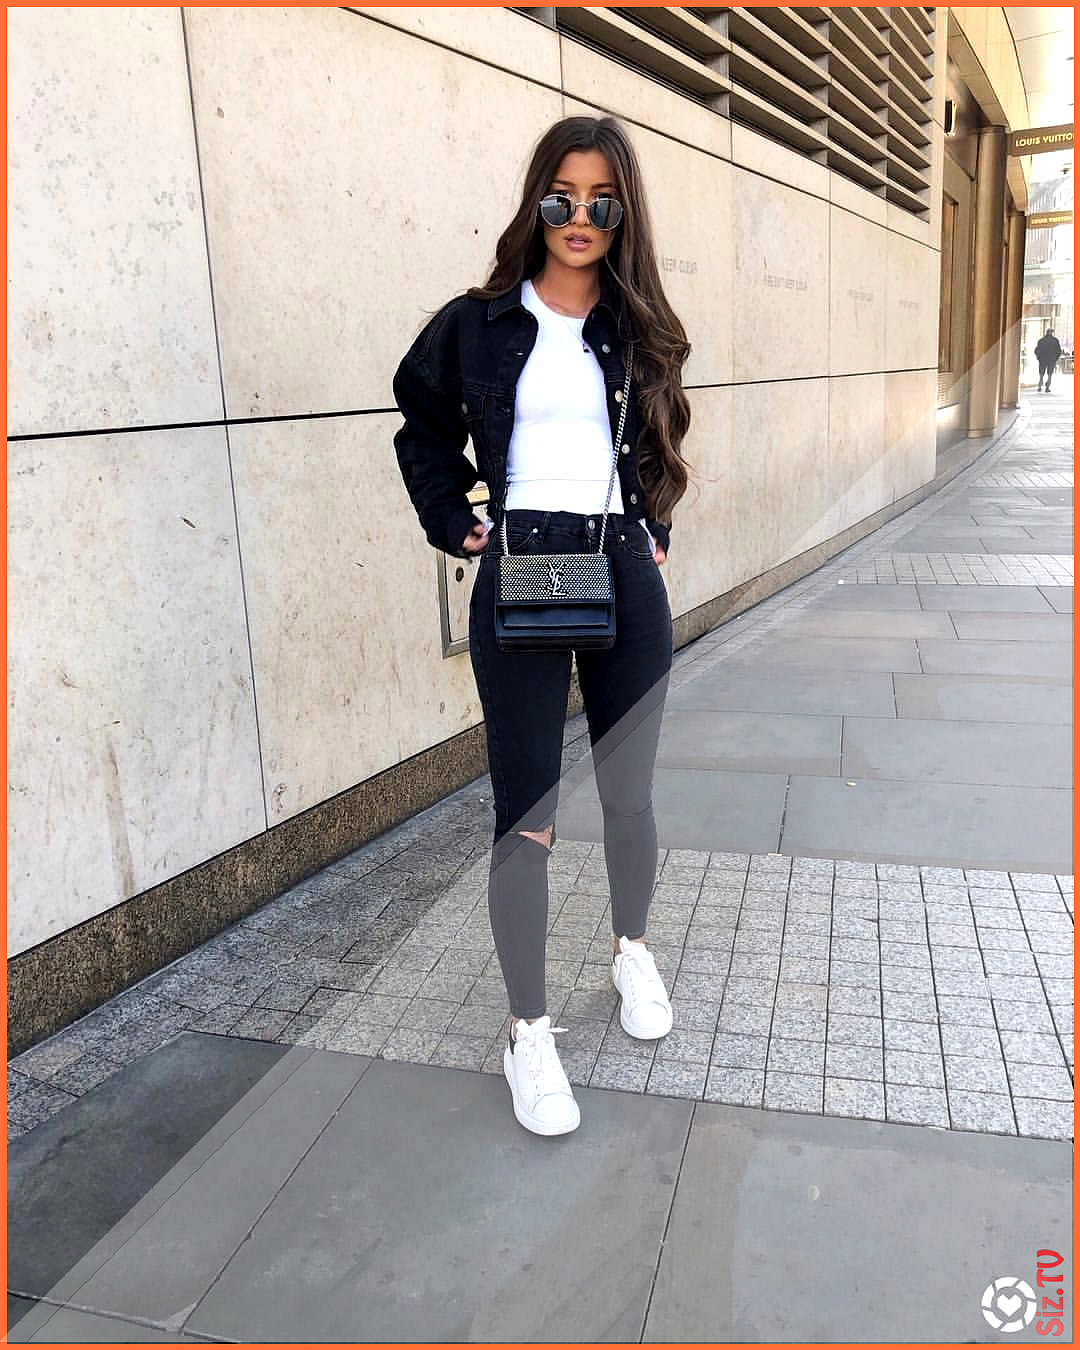 double denim days in topshop  I could LIVE in their denim Screenshot this pic and shop the look with...